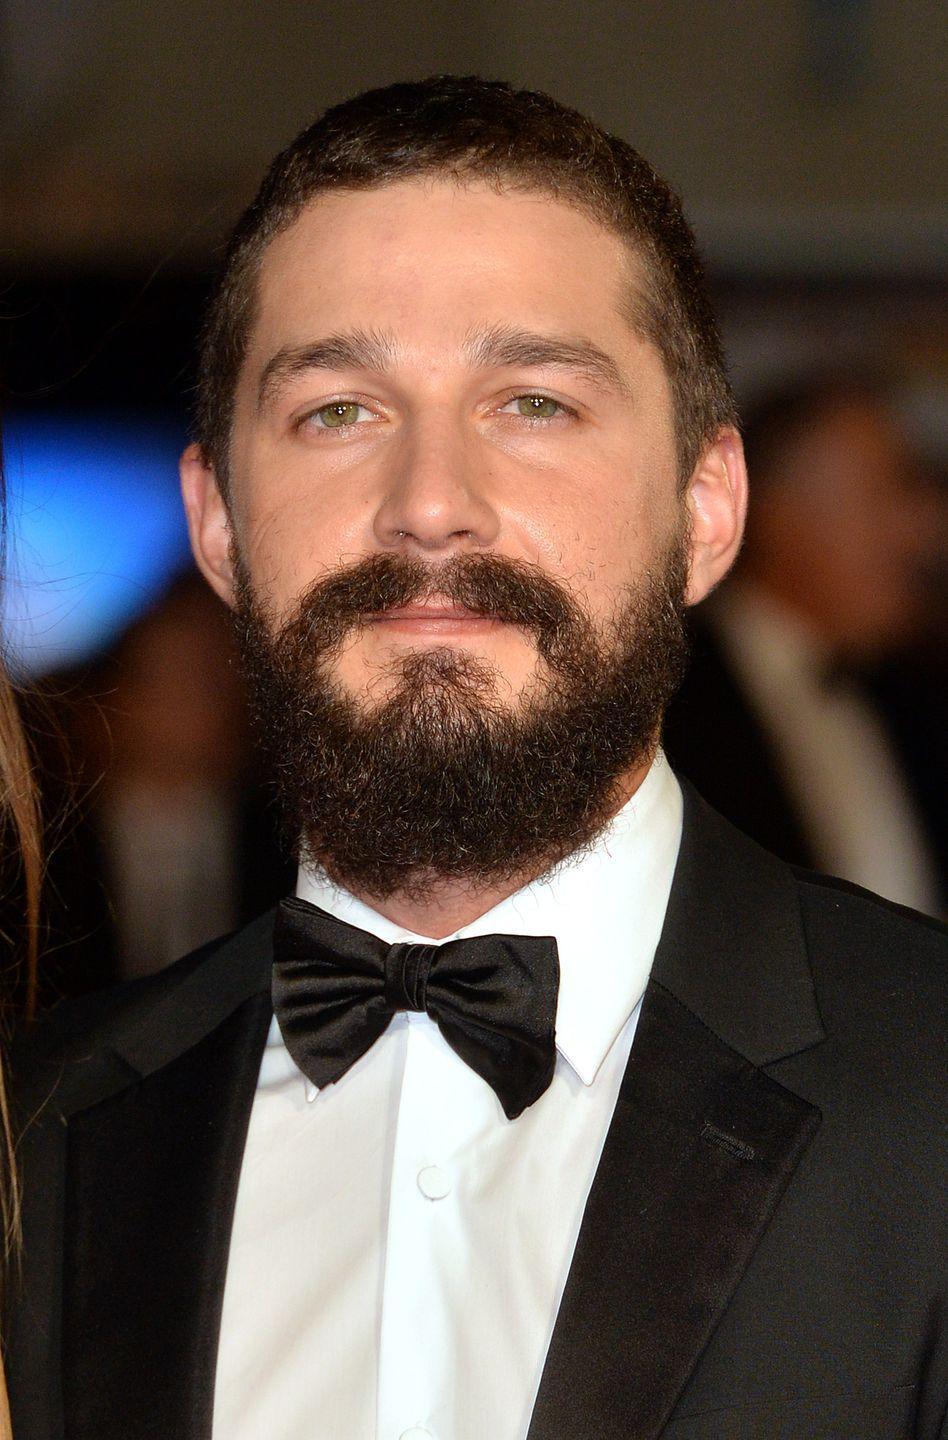 """<p>LaBeouf played Mutt in the 2008 film, <em>Indiana Jones, </em>and he's open about not feeling he did his best work. """"I feel like I dropped the ball on the legacy that people loved and cherished,"""" he told the <a href=""""http://latimesblogs.latimes.com/movies/2010/05/shia-labeouf-wall-street-2-indiana-jones-steven-spielberg.html"""" rel=""""nofollow noopener"""" target=""""_blank"""" data-ylk=""""slk:LA Times"""" class=""""link rapid-noclick-resp""""><em>LA Times</em></a>. """"You get to monkey-swinging and things like that and you can blame it on the writer and you can blame it on Steven [Spielberg]. But the actor's job is to make it come alive and make it work, and I couldn't do it. So that's my fault. Simple."""" LaBeouf's character won't be returning for a sequel. </p>"""